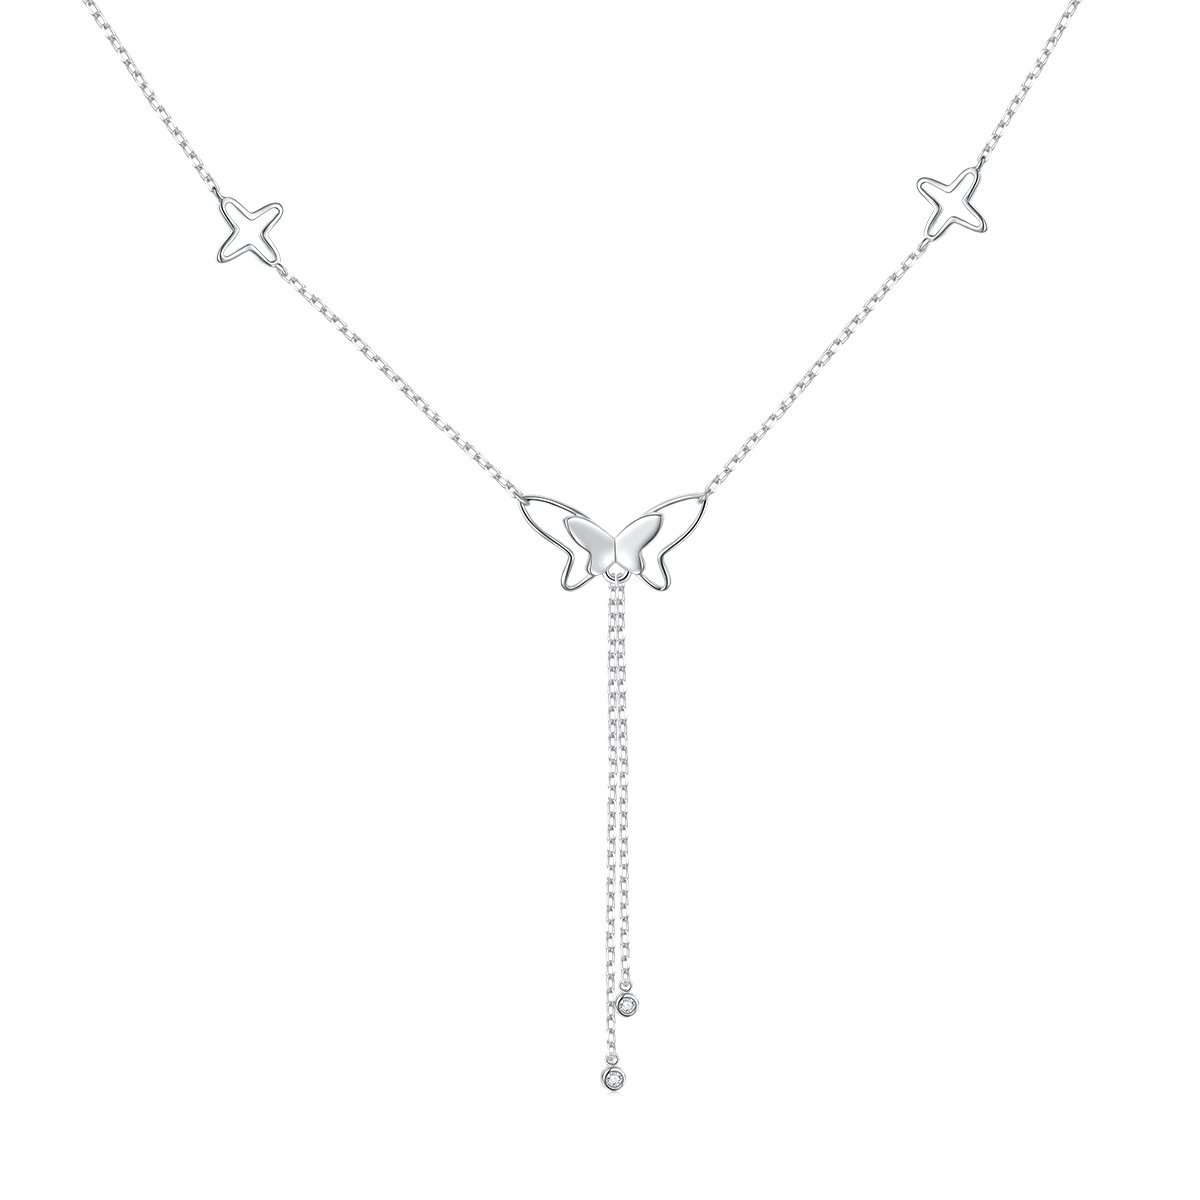 Butterfly Necklace 925 Sterling Silver Cz Butterfly Choker Y Necklace for Women Girls,16+2 inch